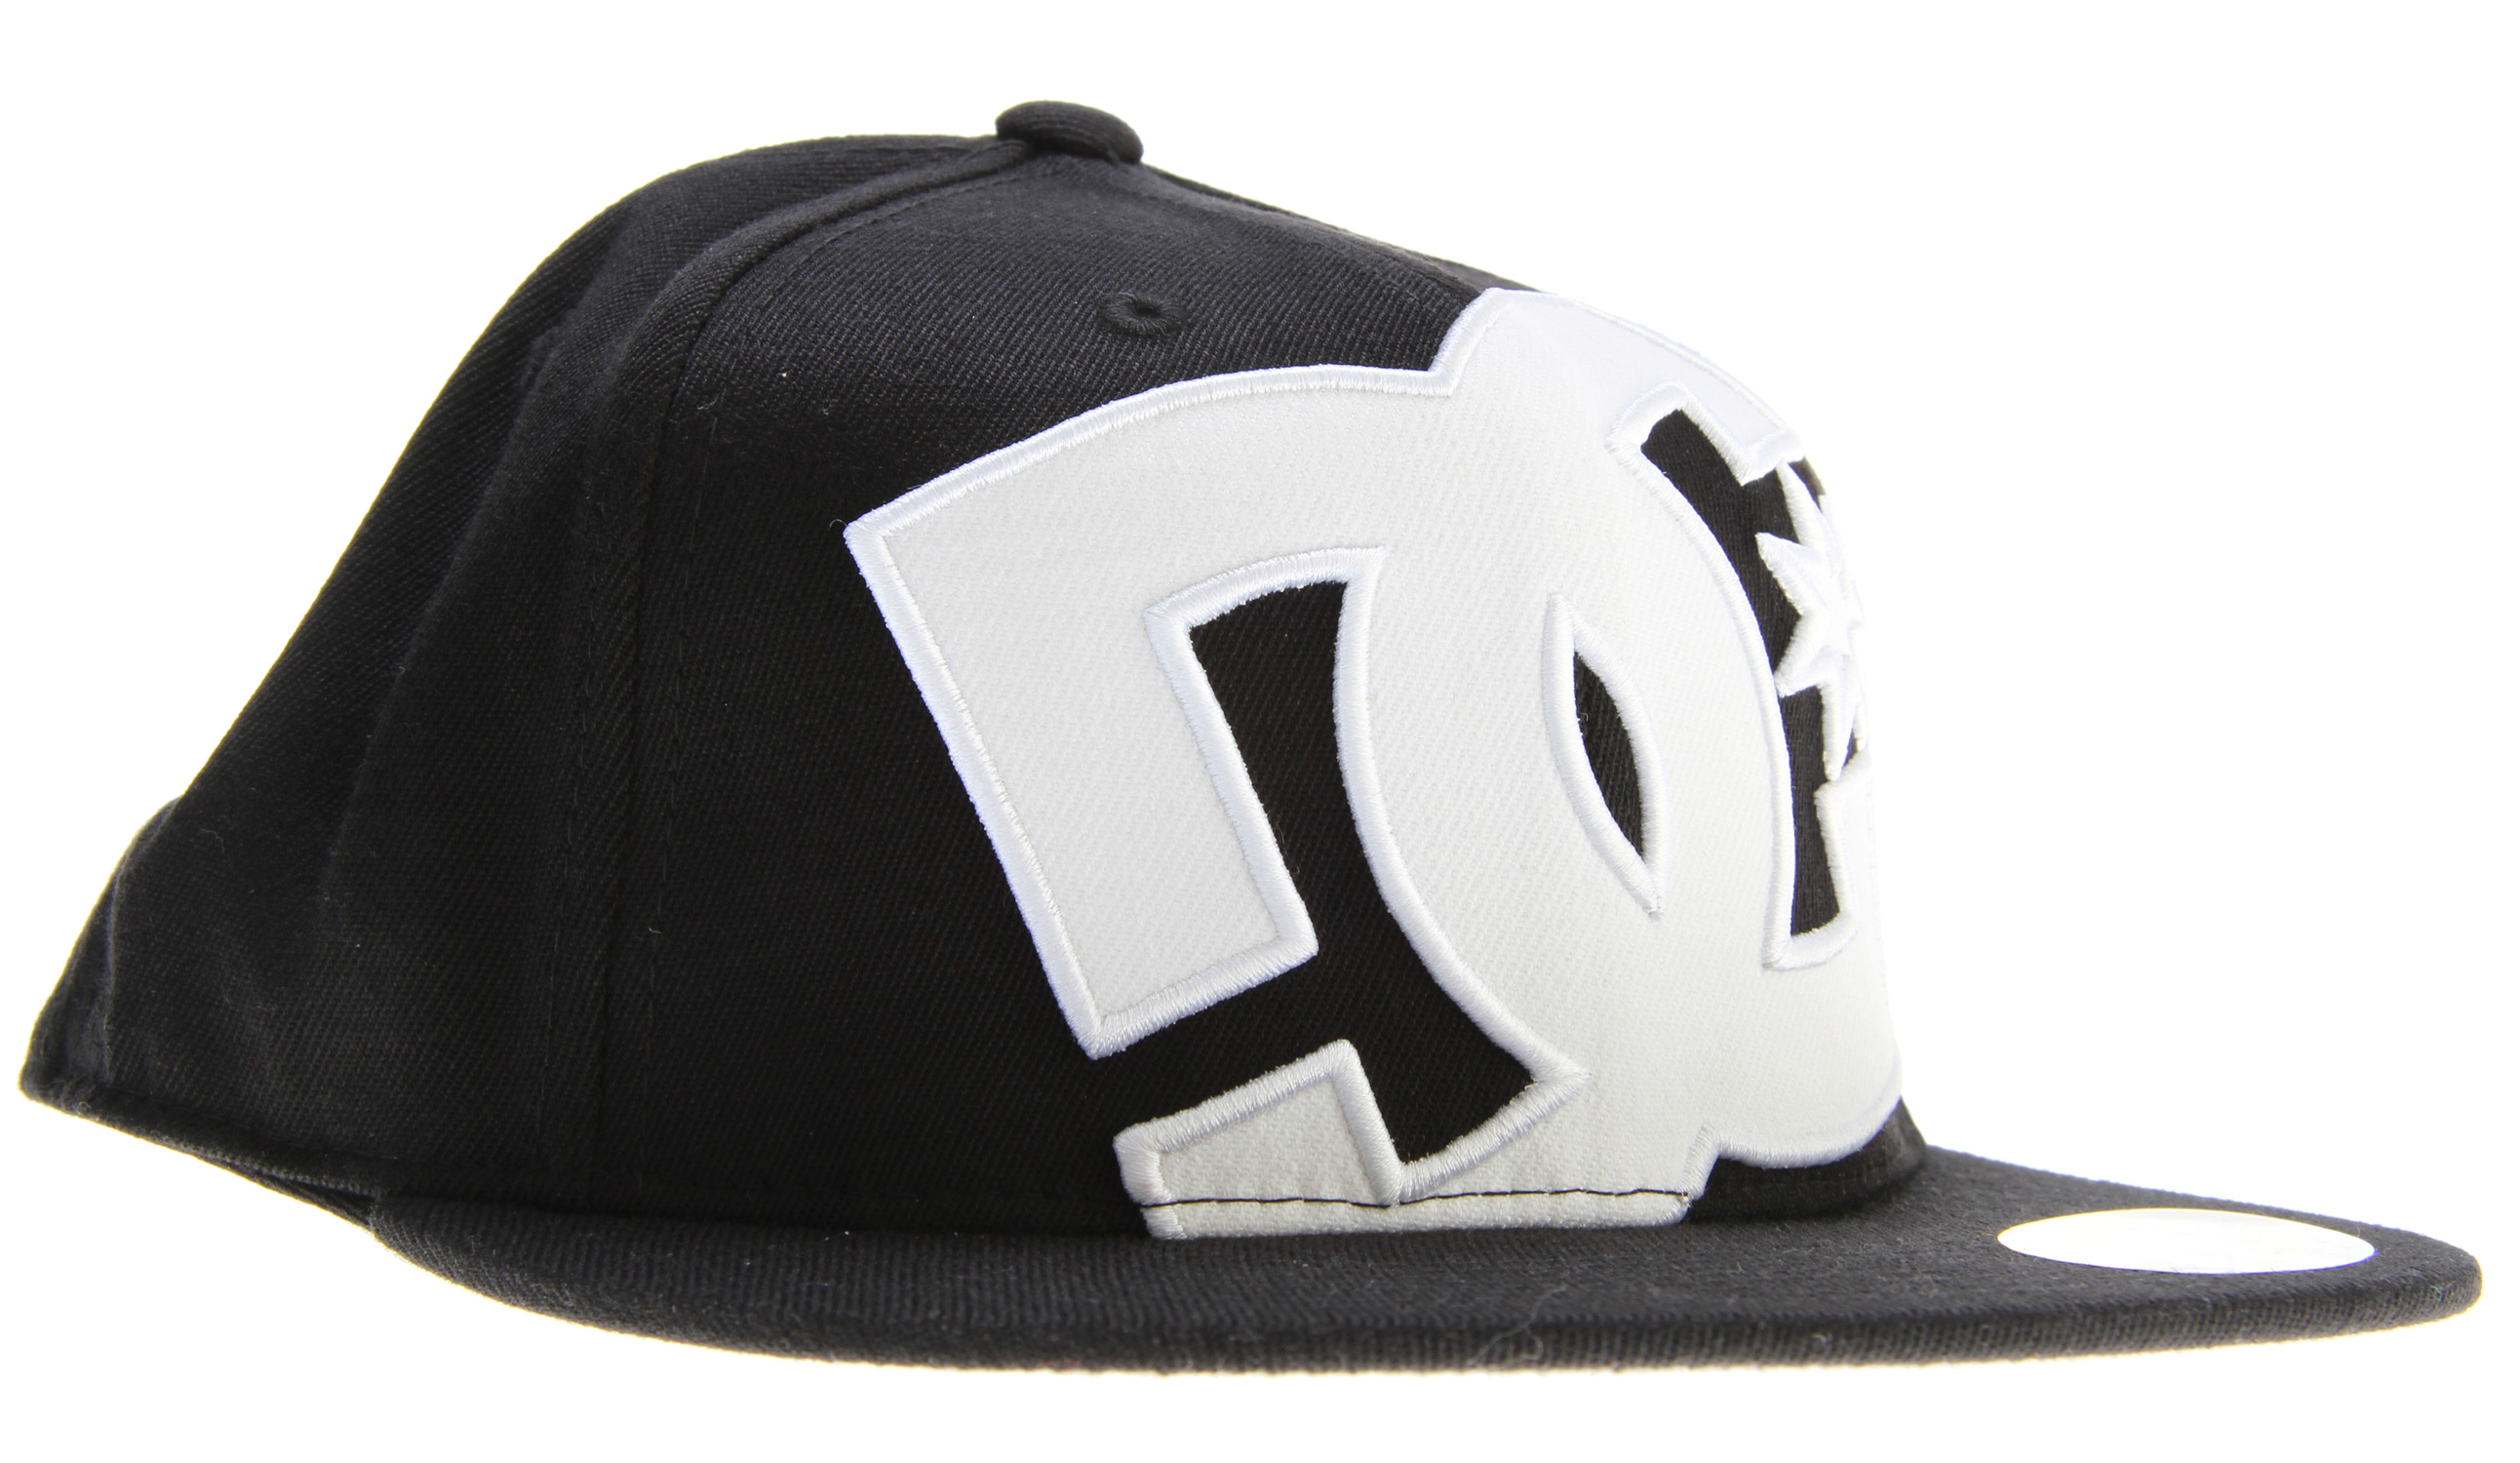 Key Features of the DC Ya Heard 2 Cap: Wool blend 210 FlexFit Contrast logo applique Small back logo 83% Acrylic 15% Wool 2% Spandex - $20.95